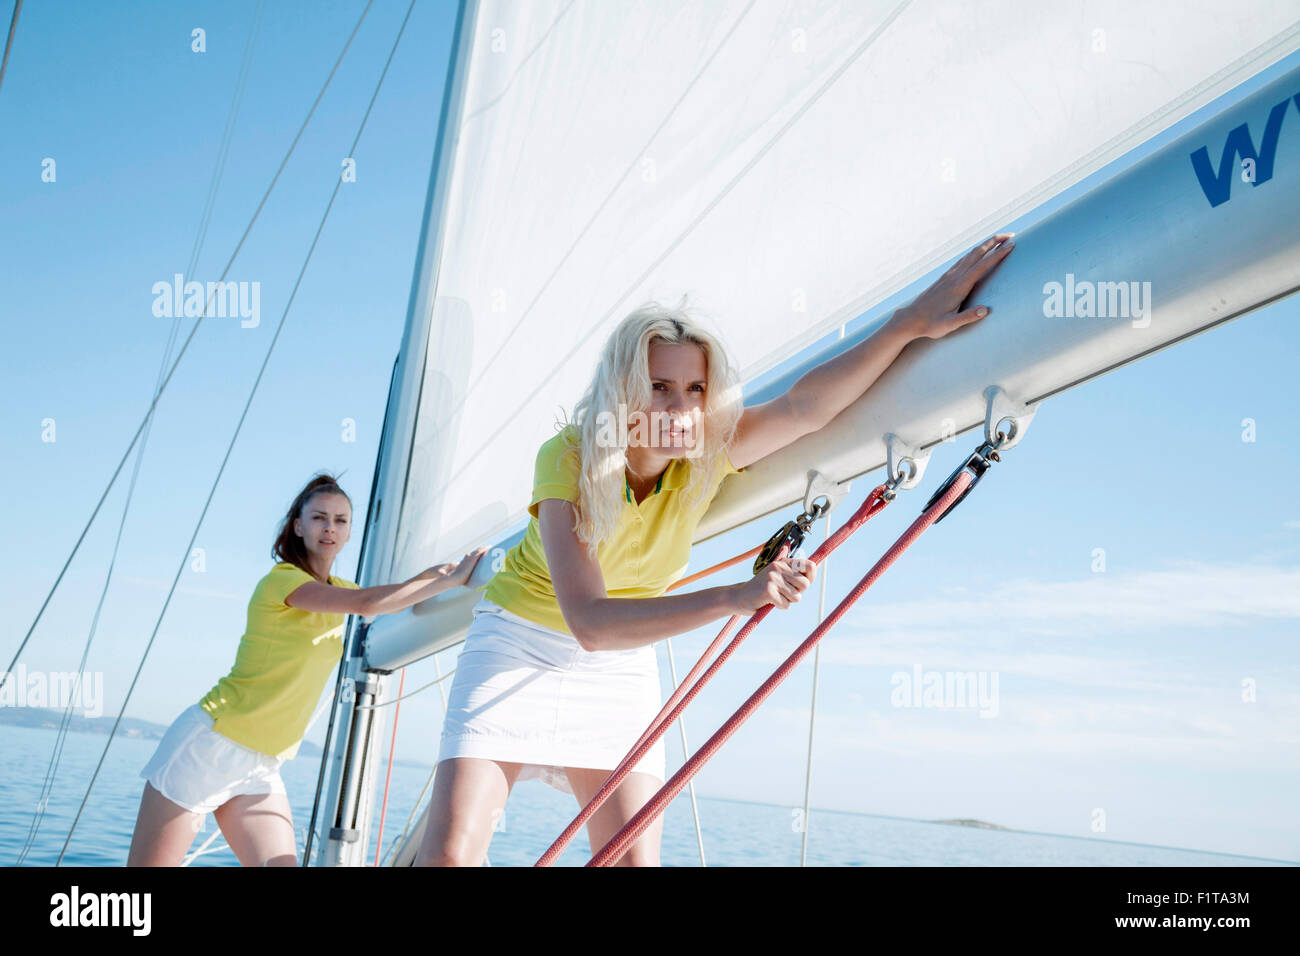 Two women adjusting rigging together on sailboat, Adriatic Sea - Stock Image